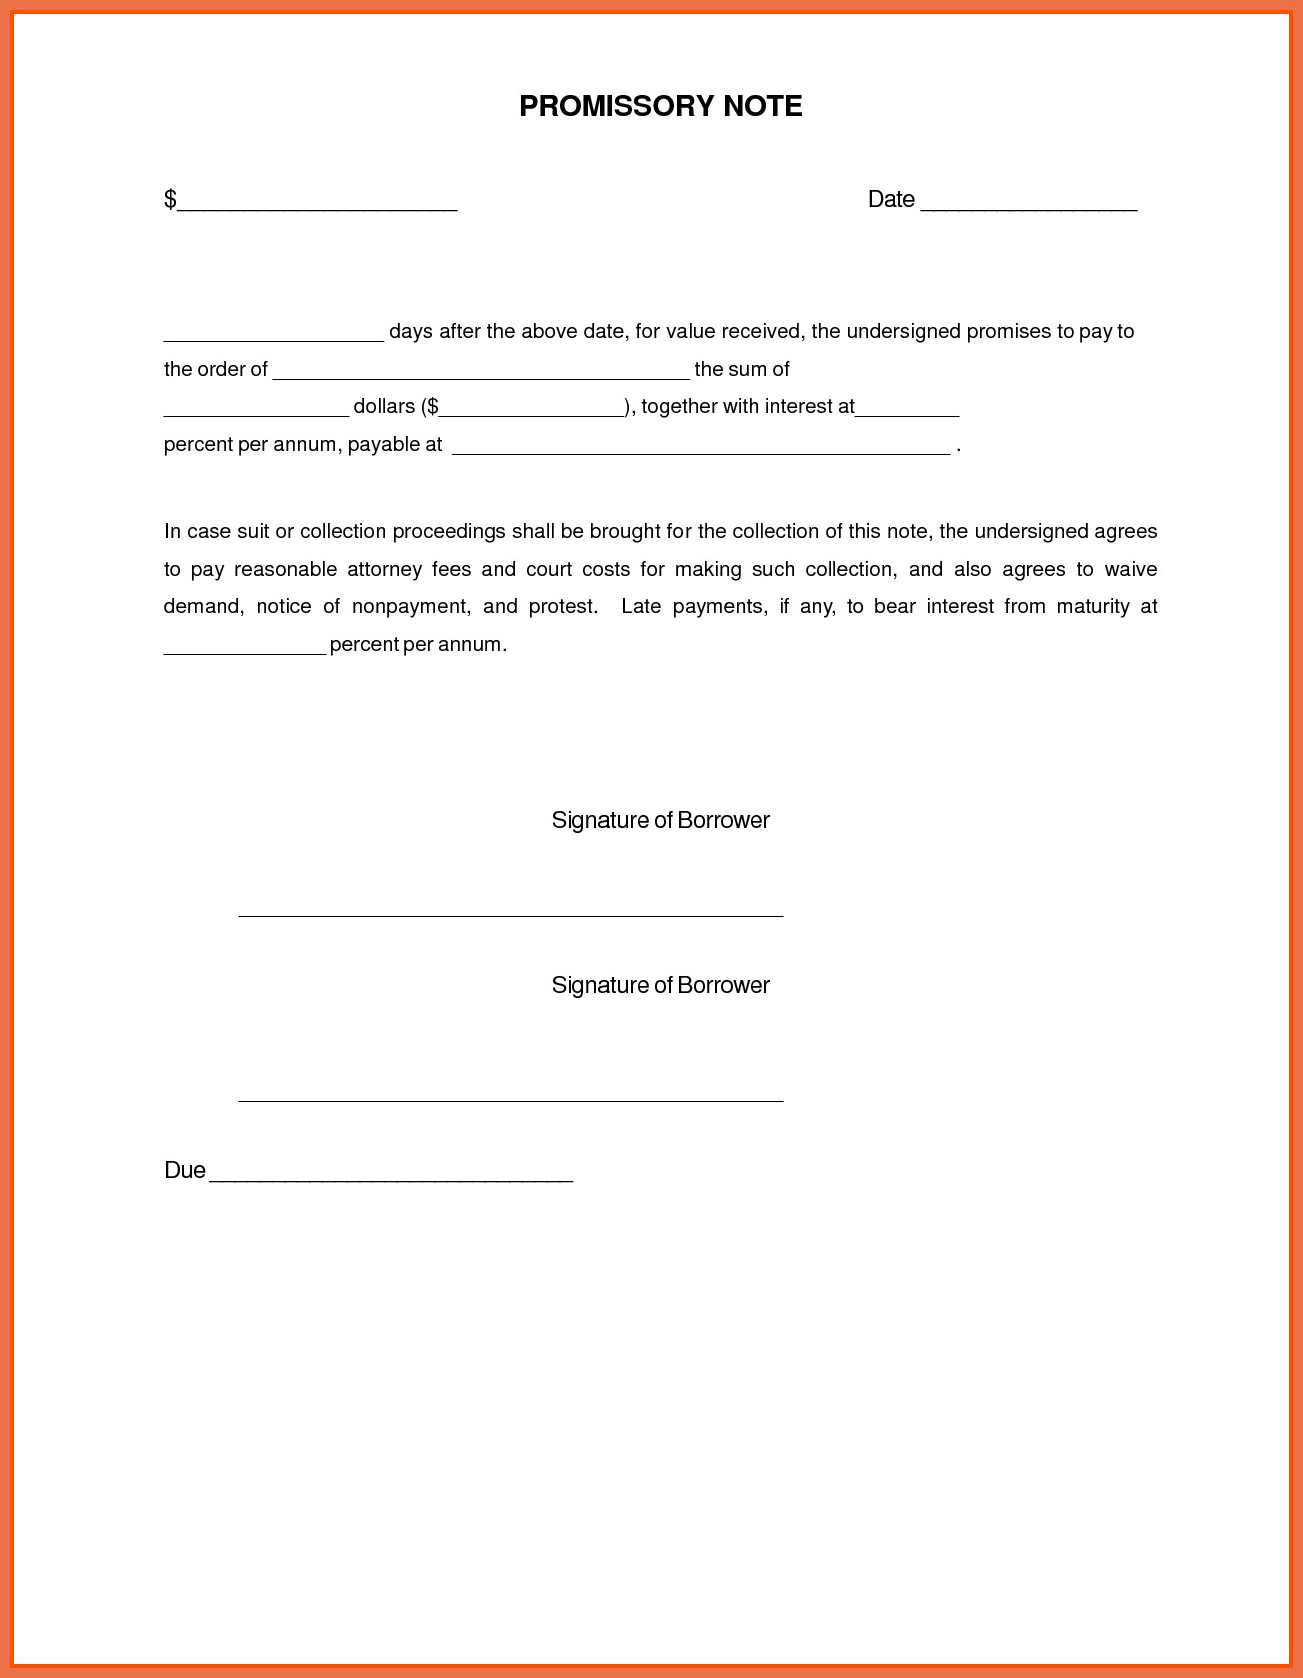 6 7 SIMPLE PROMISSORY NOTE | jobproposalletter